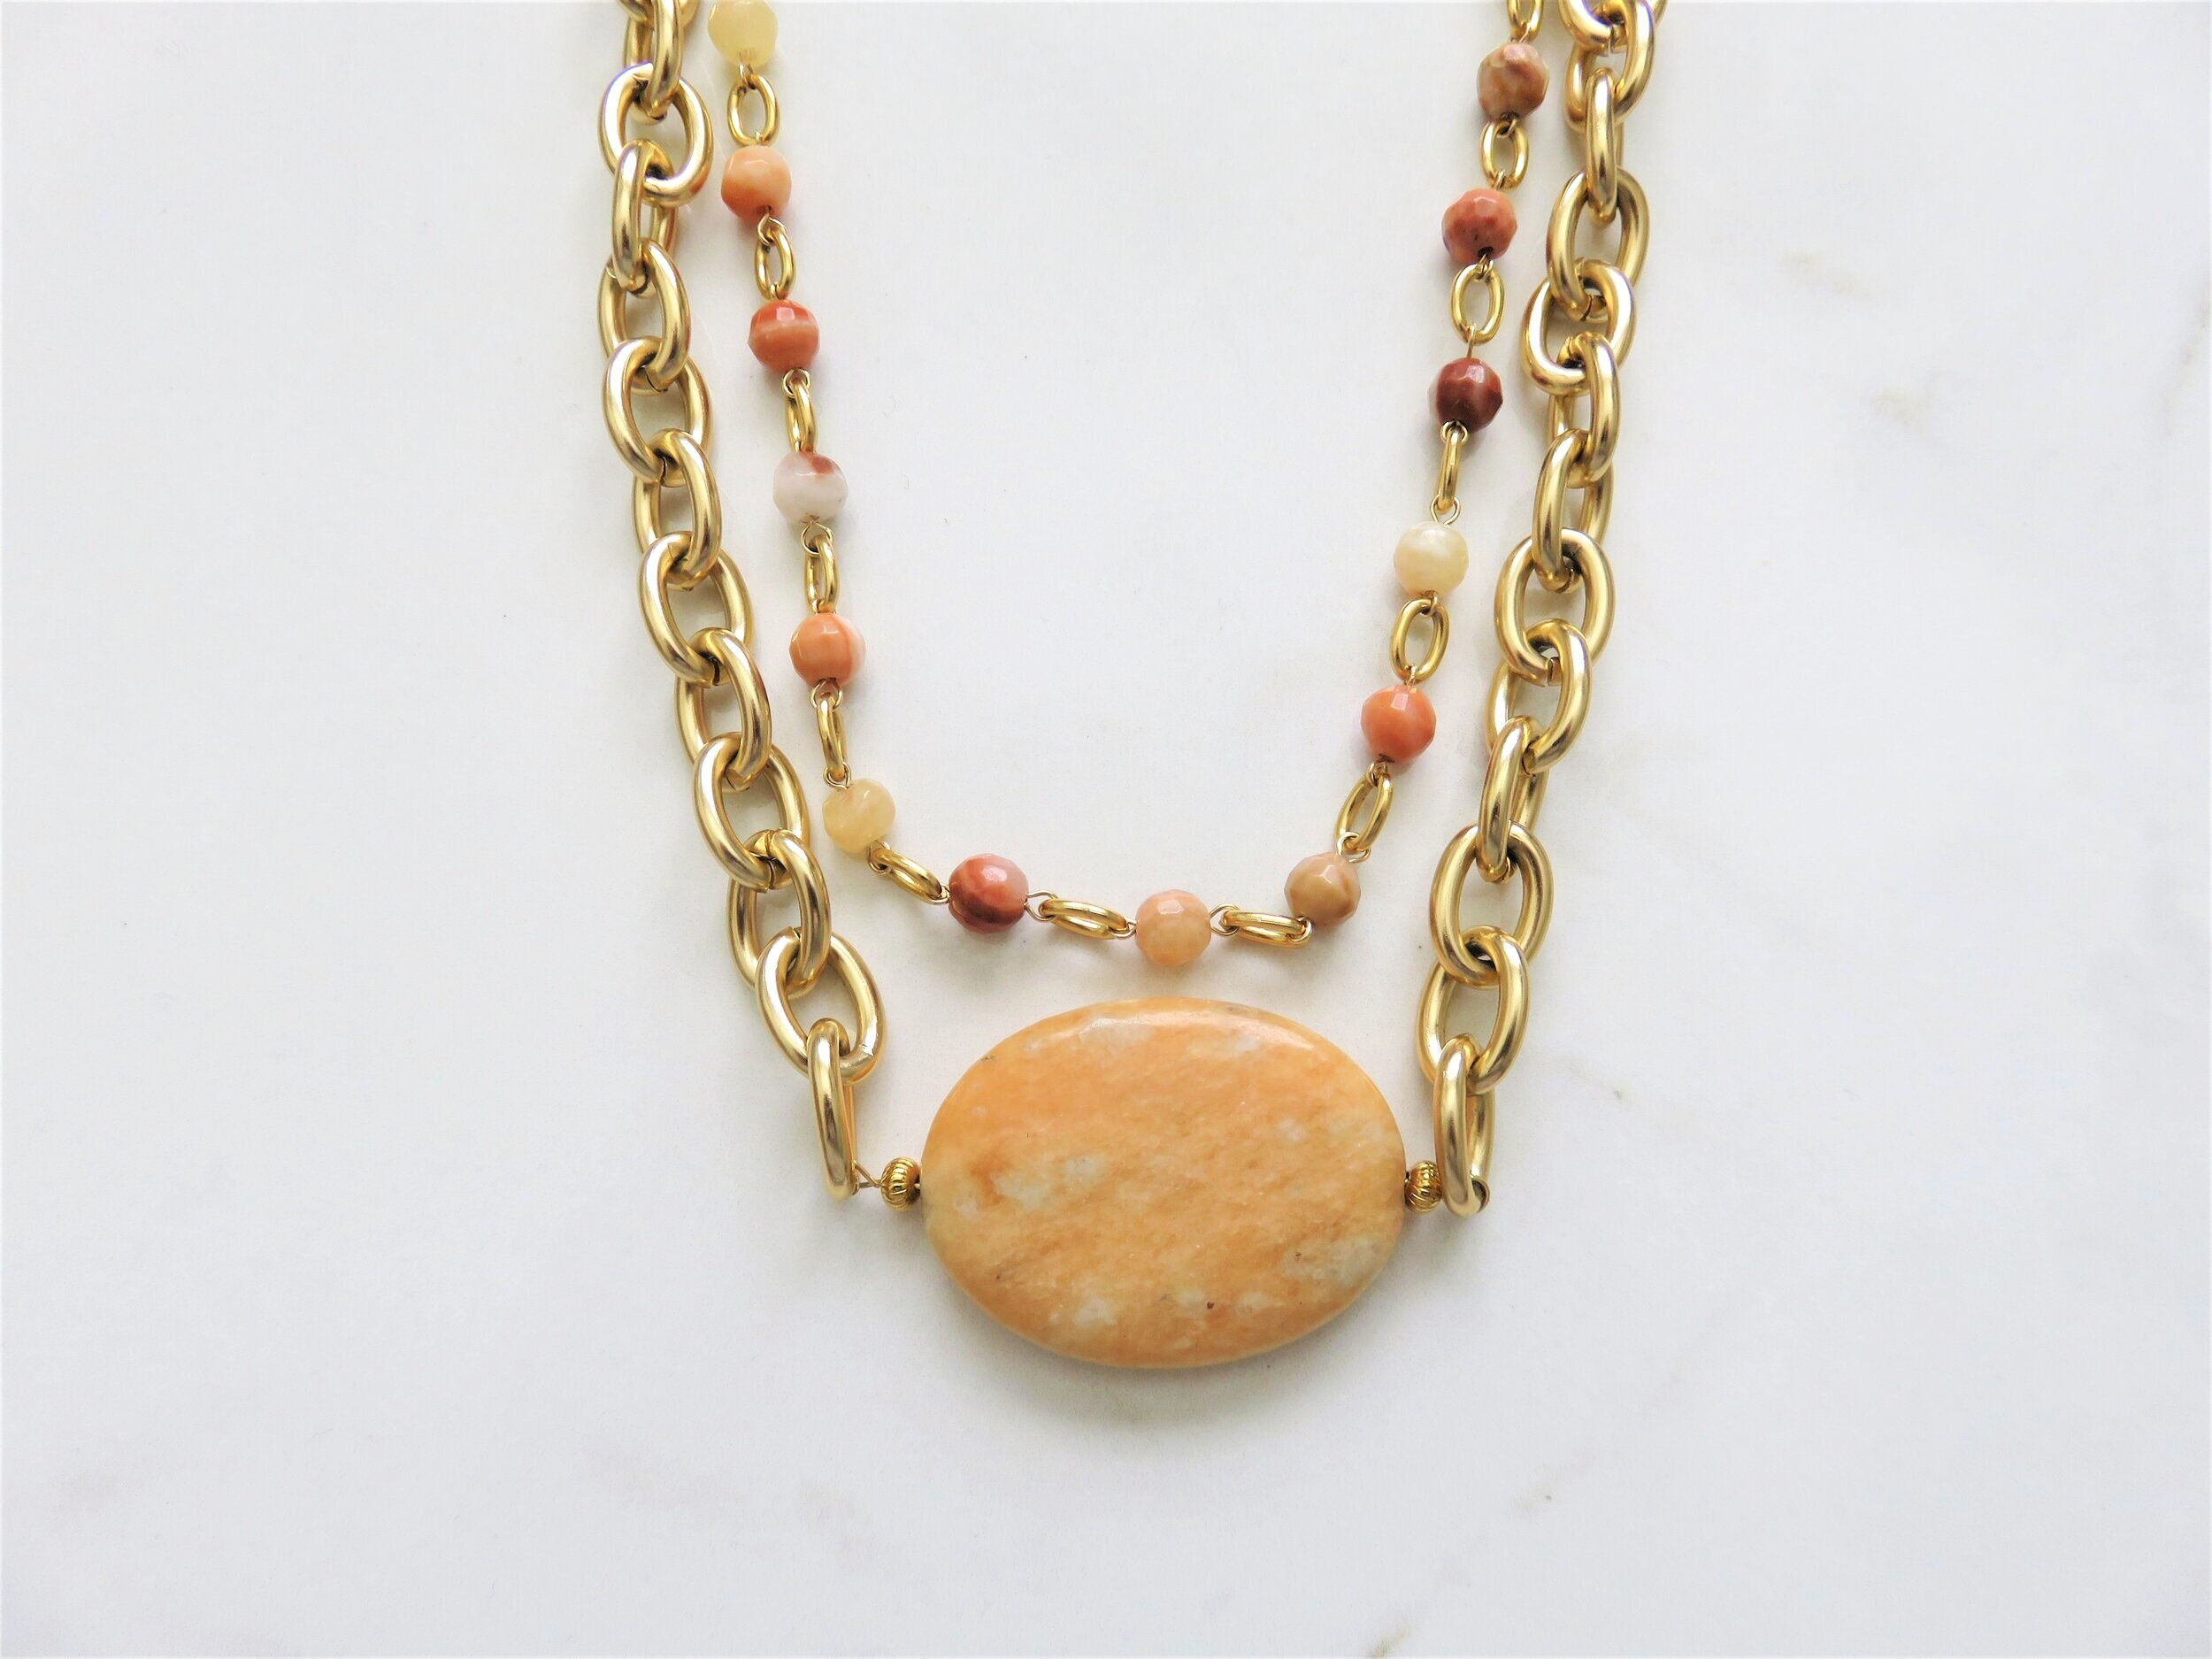 orange+and+gold+gemstone+necklace+2+layer+handmade.jpg